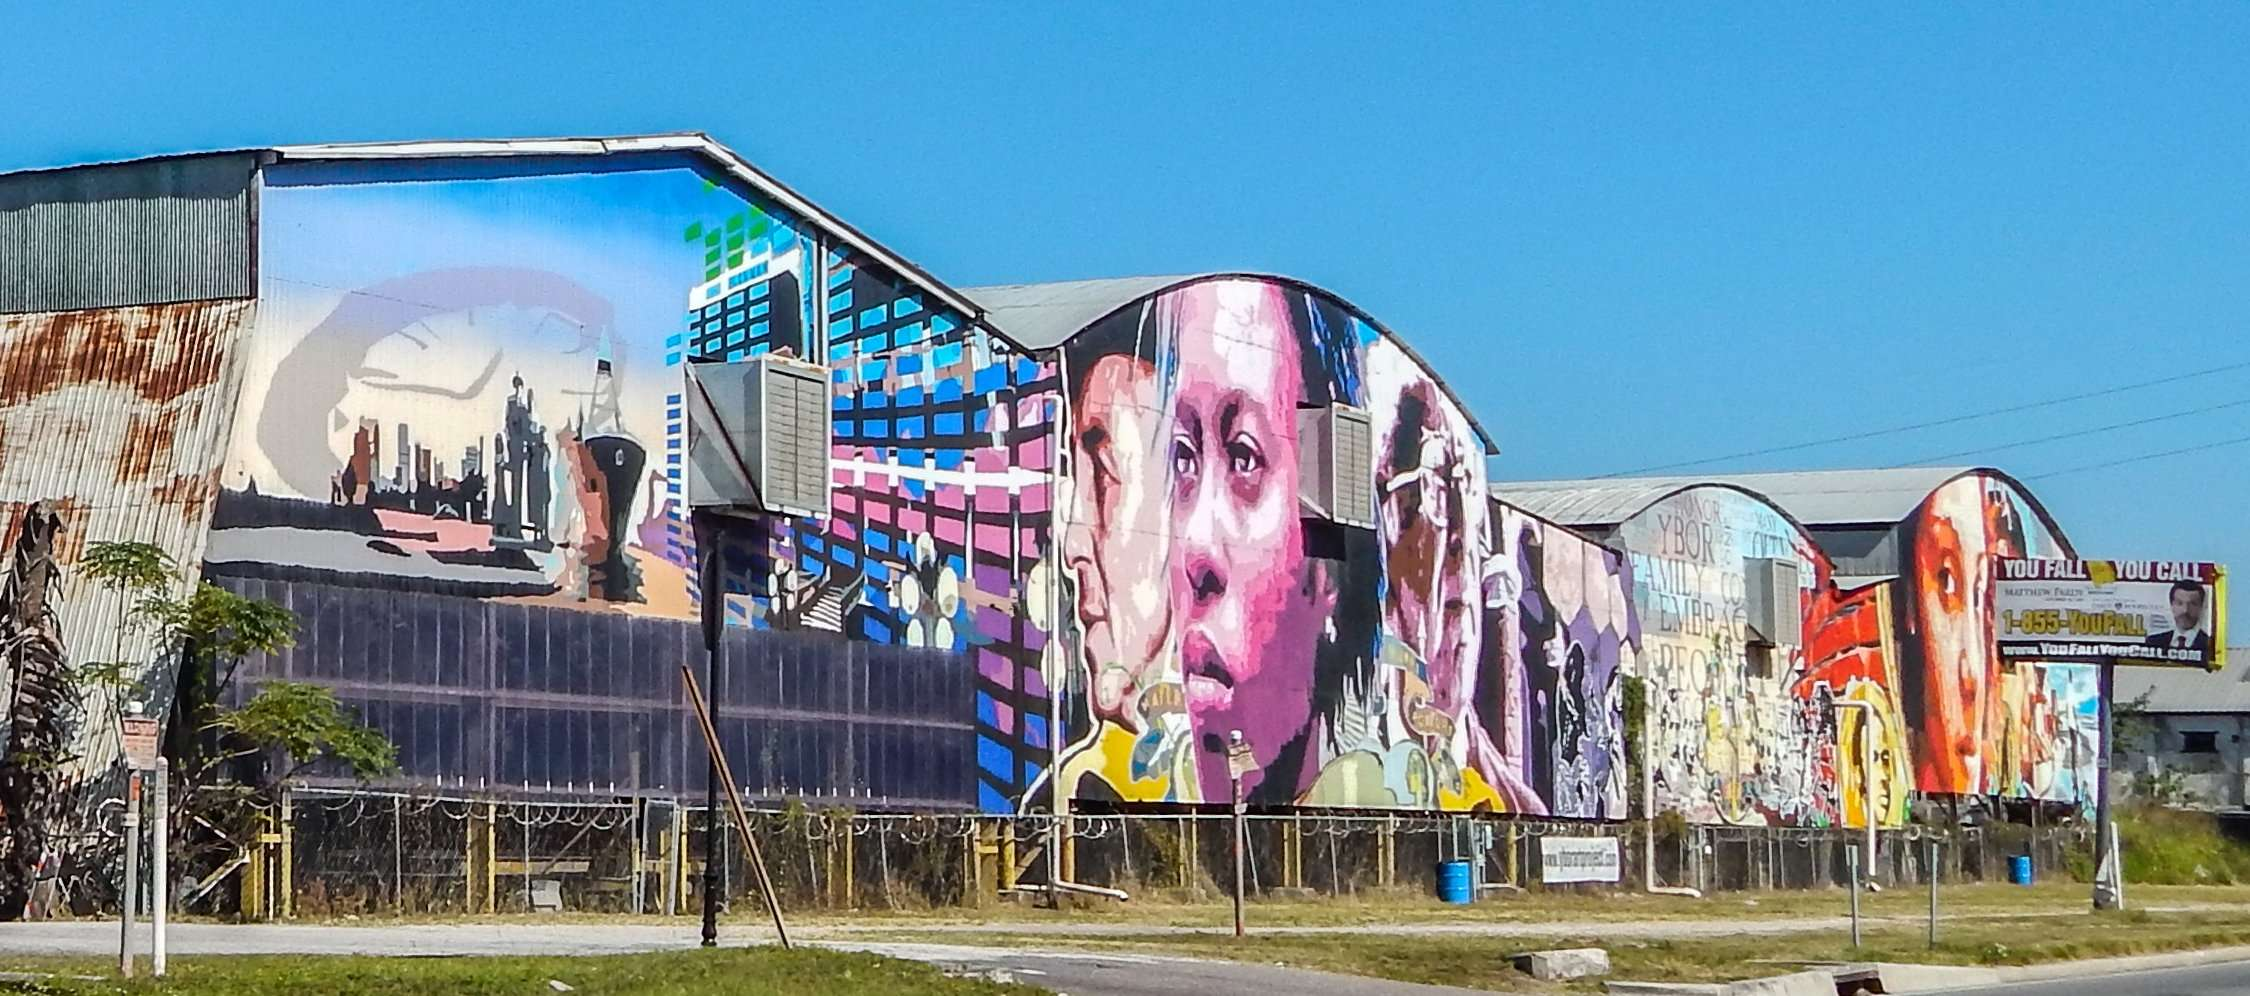 Biggest mural in florida photo news 247 for City of tampa mural